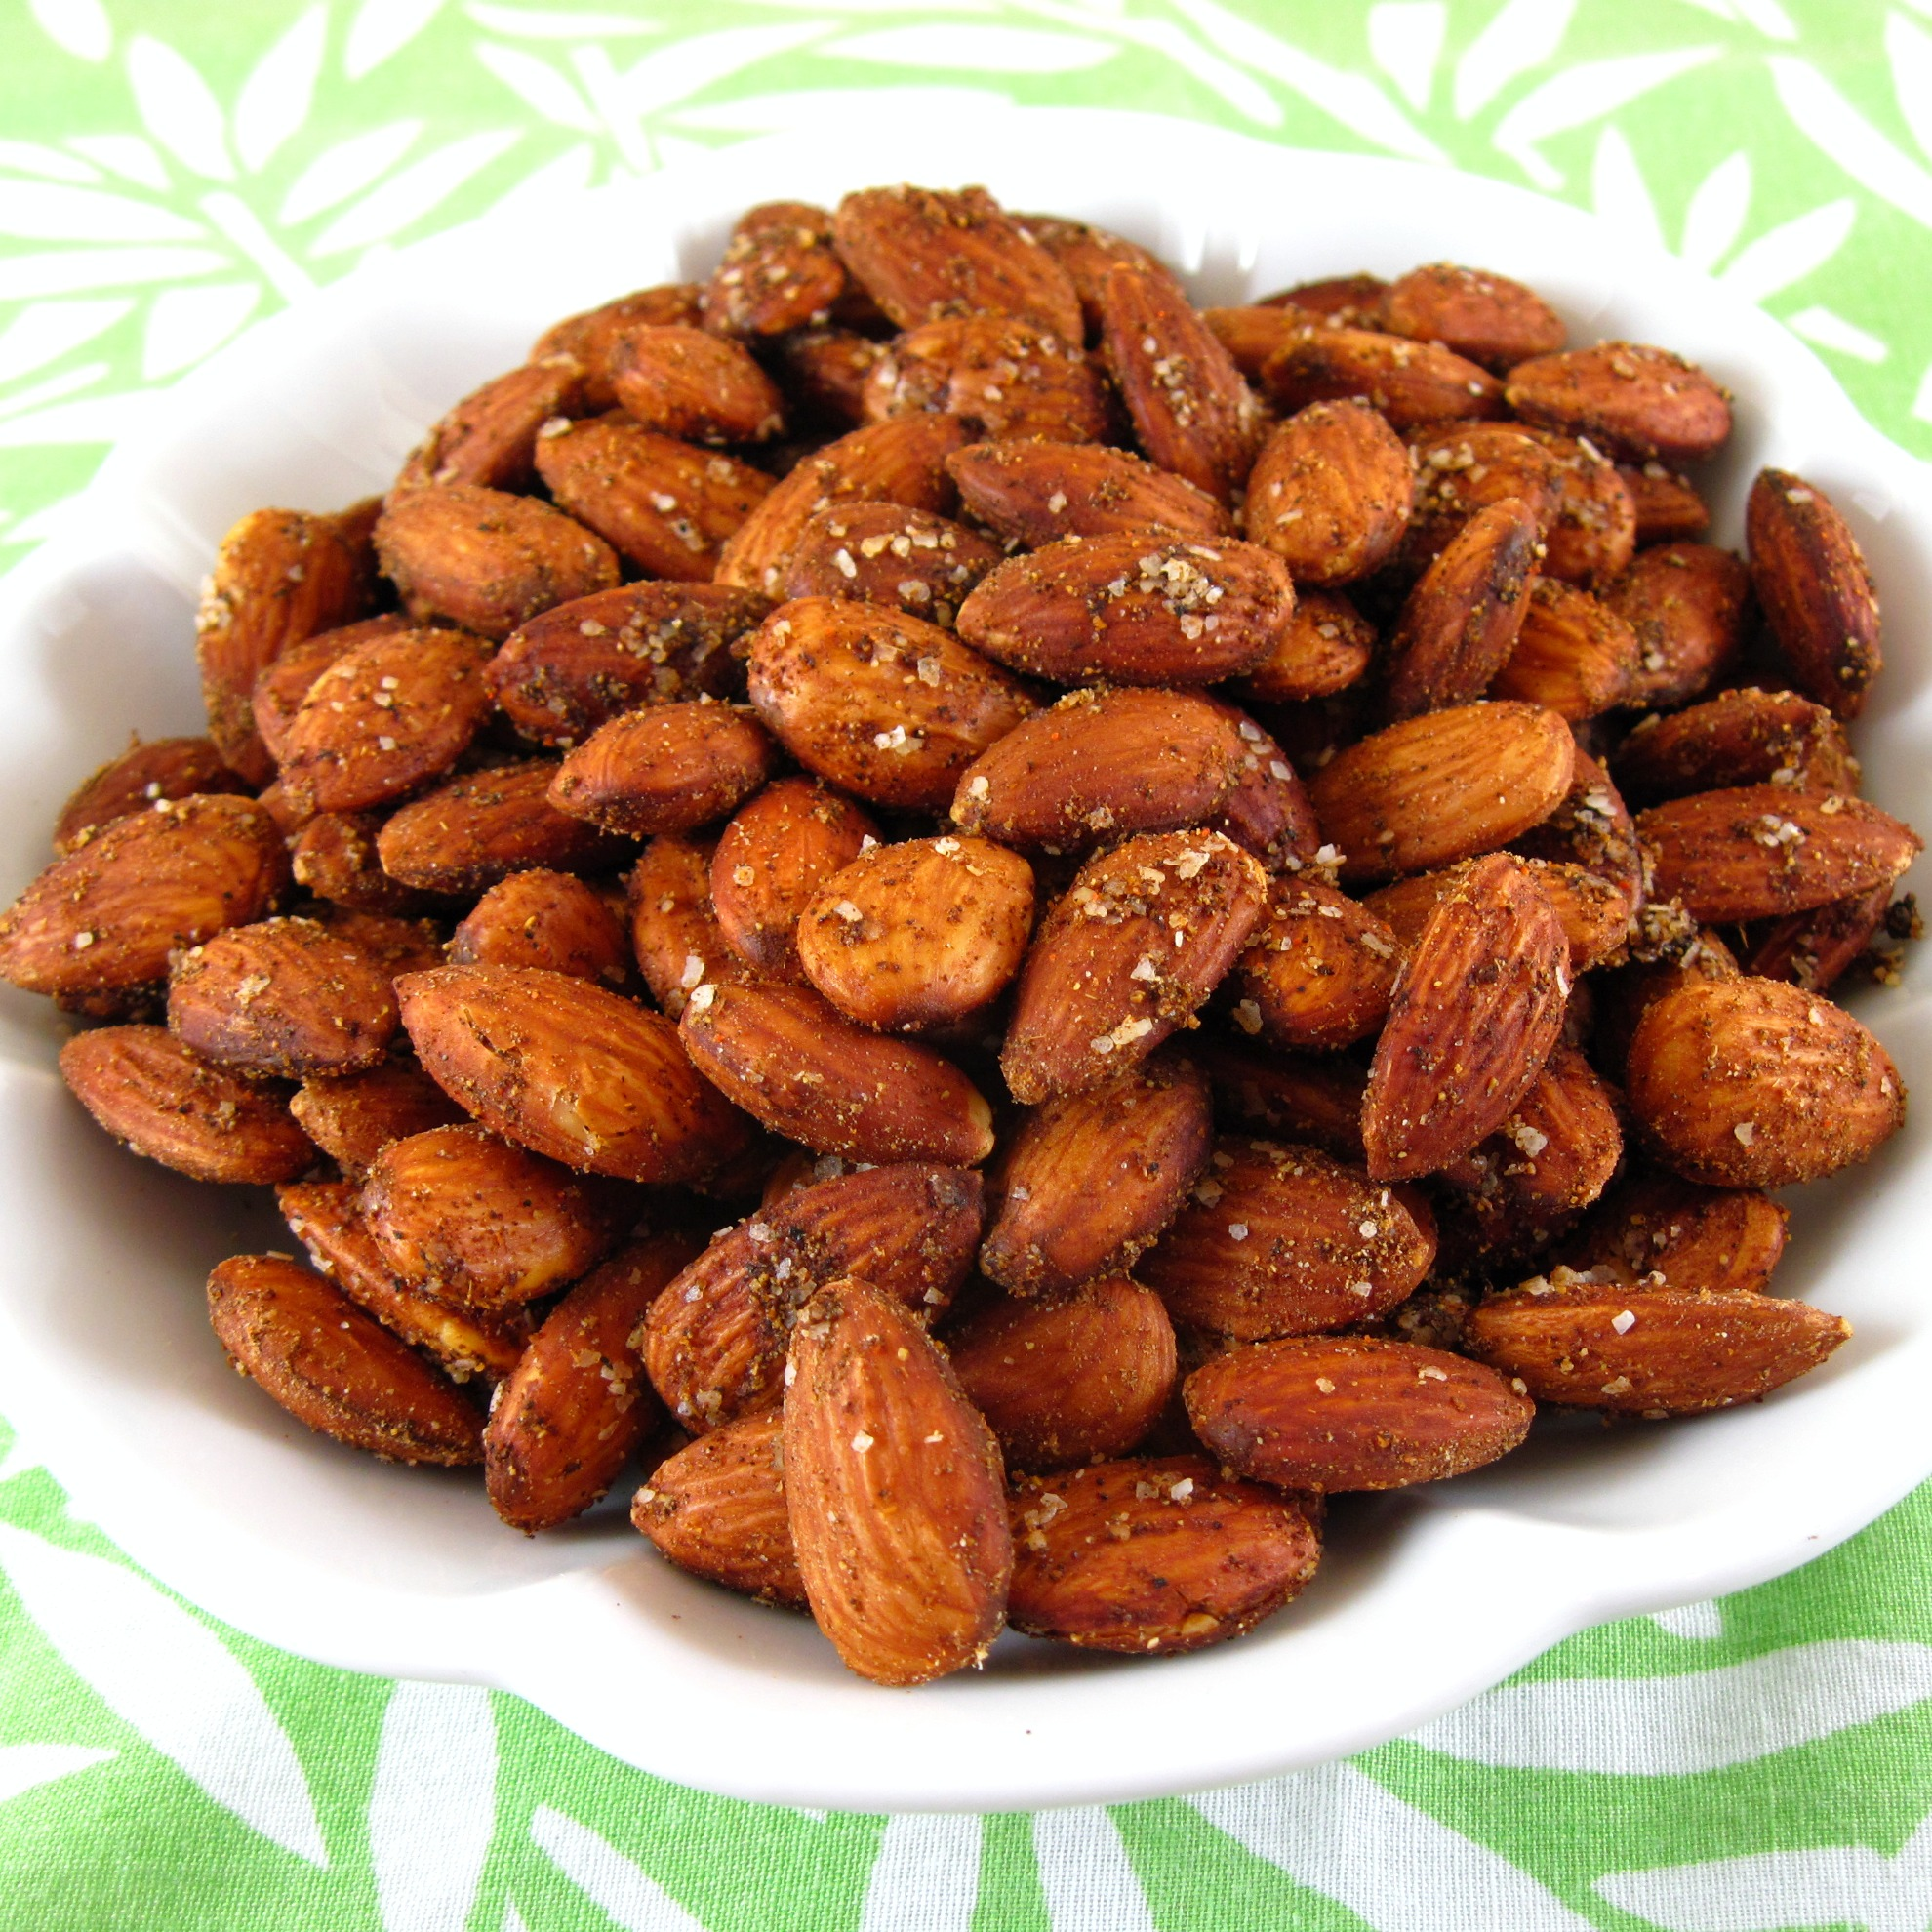 Vij's Spiced, Roasted Almonds or Cashews | In the kitchen ...